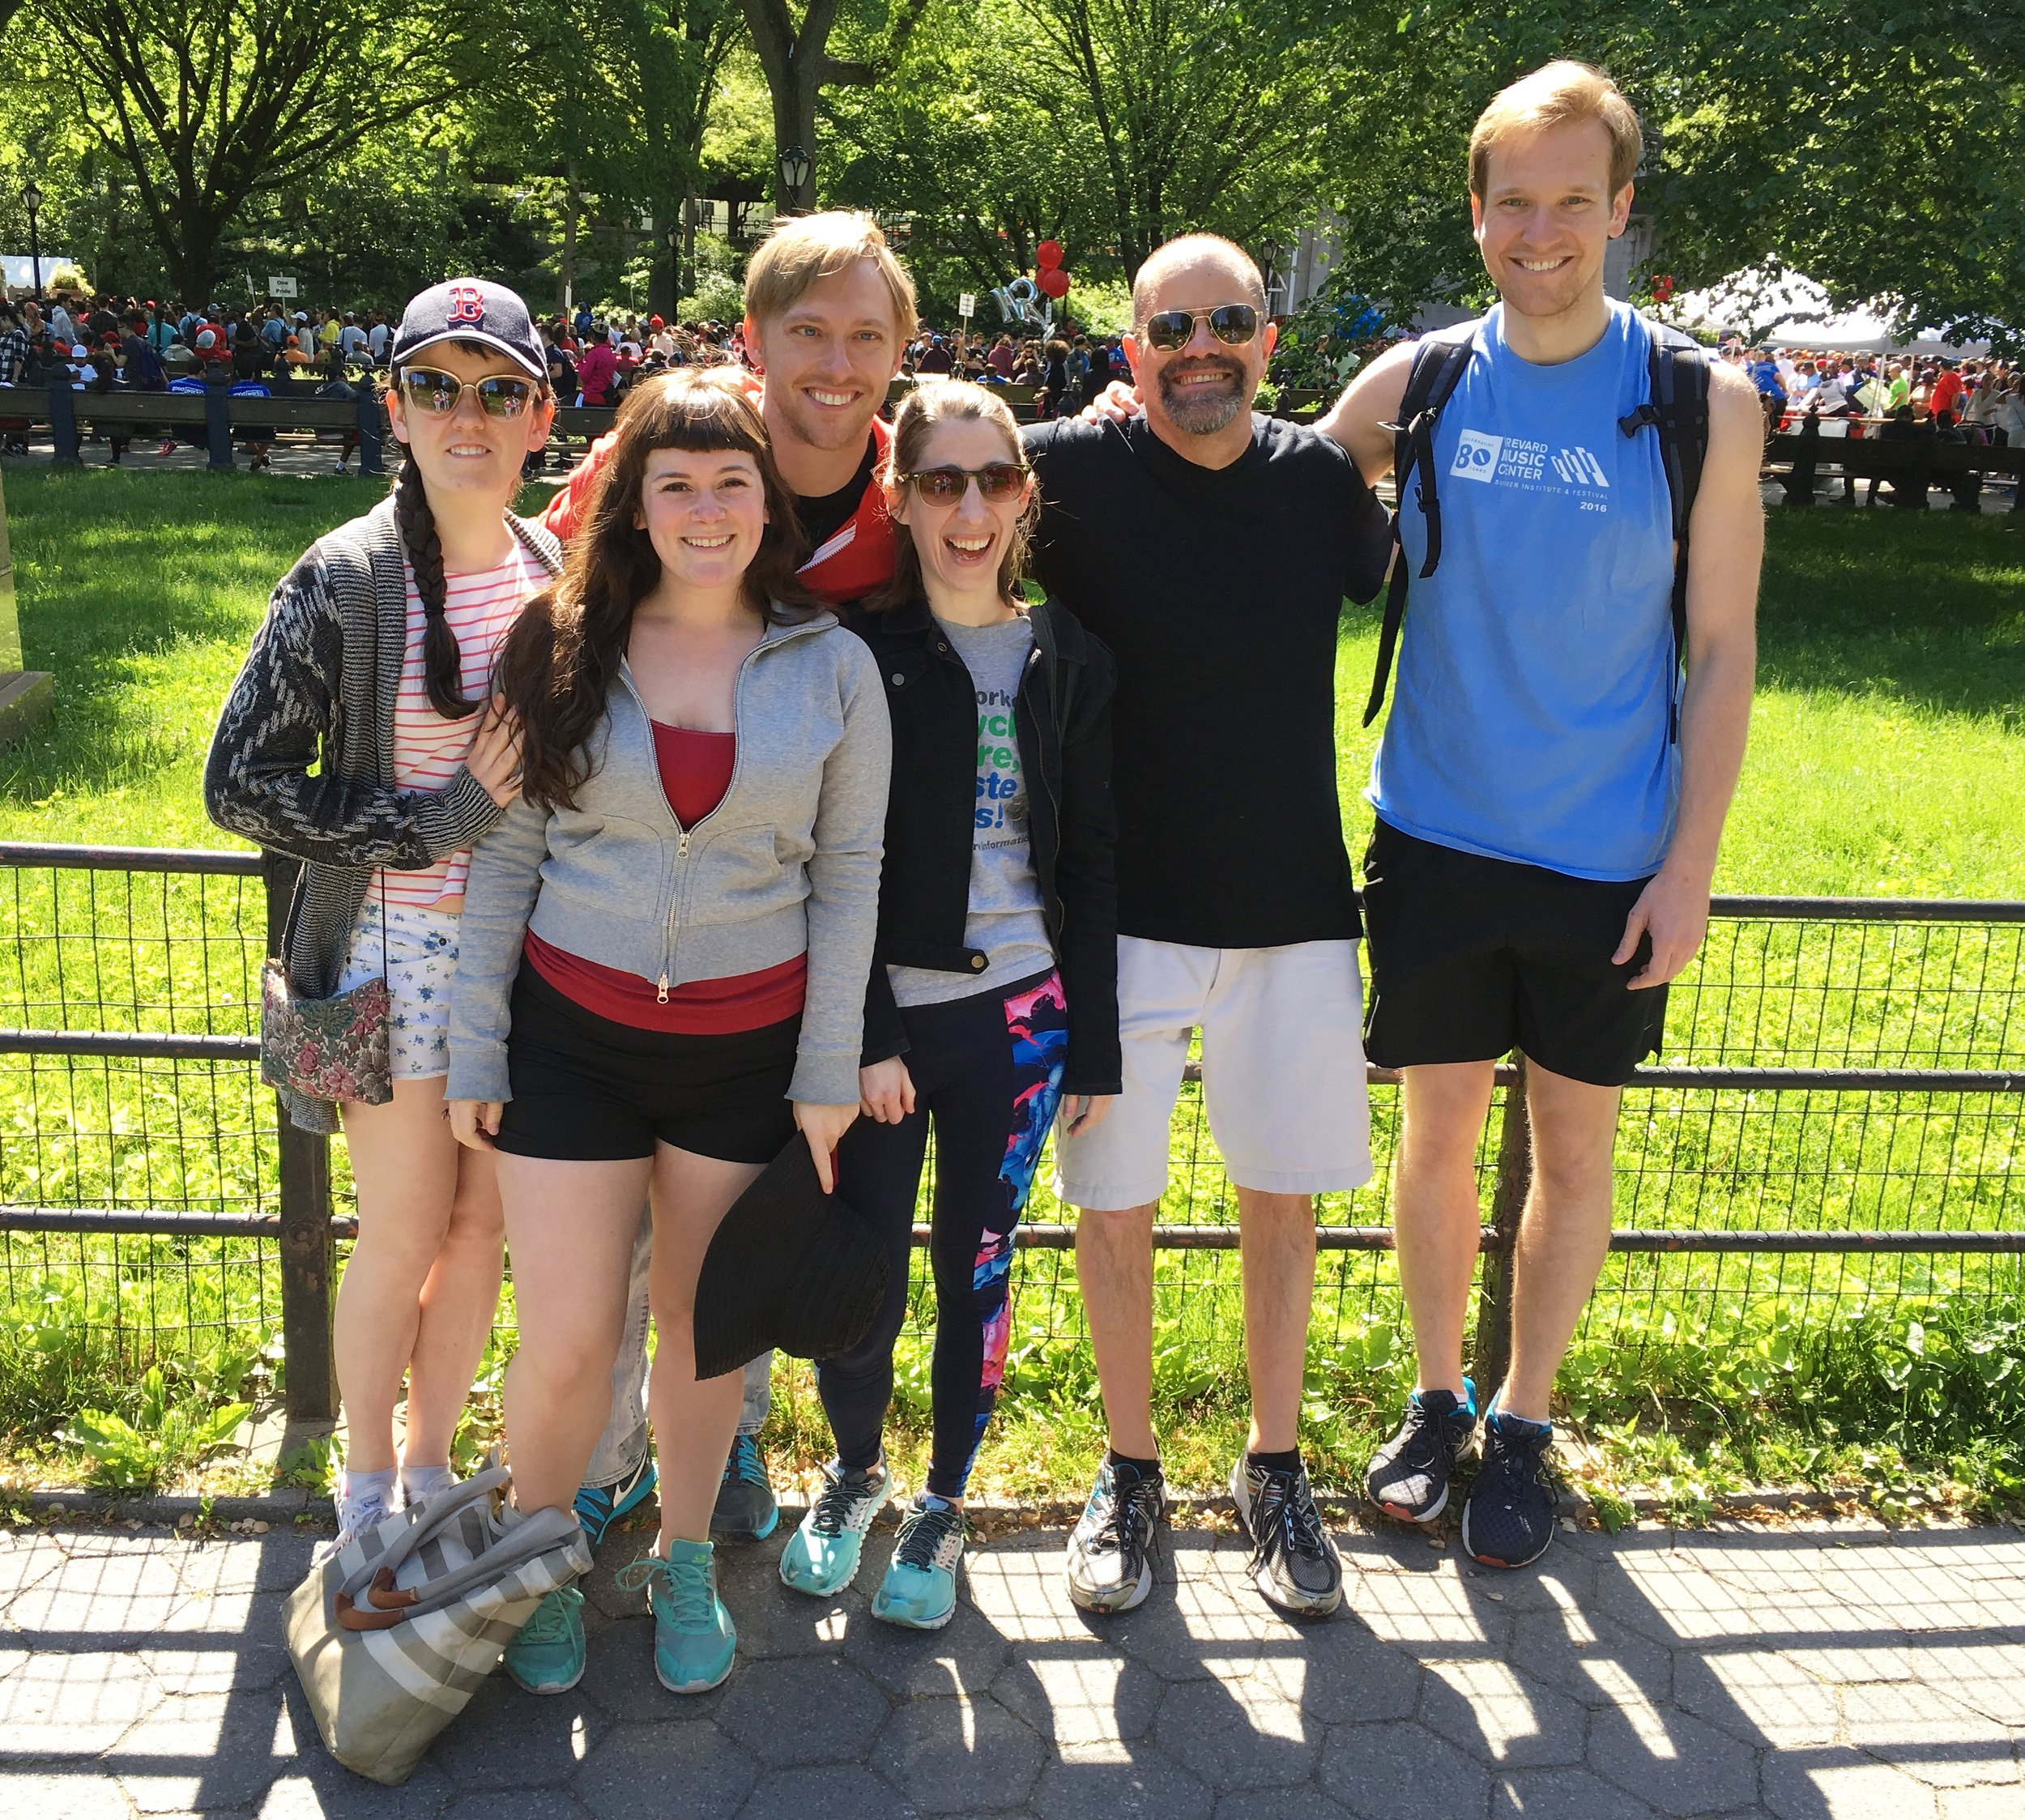 Team Shrill FTW! - A few of our Shrills and Shrallies walked to support the cure and care for those with HIV/AIDS at the 2017 NY AIDS Walk. Together with our friends and families, we raised $550 to donate to the cause.May 21, 2017